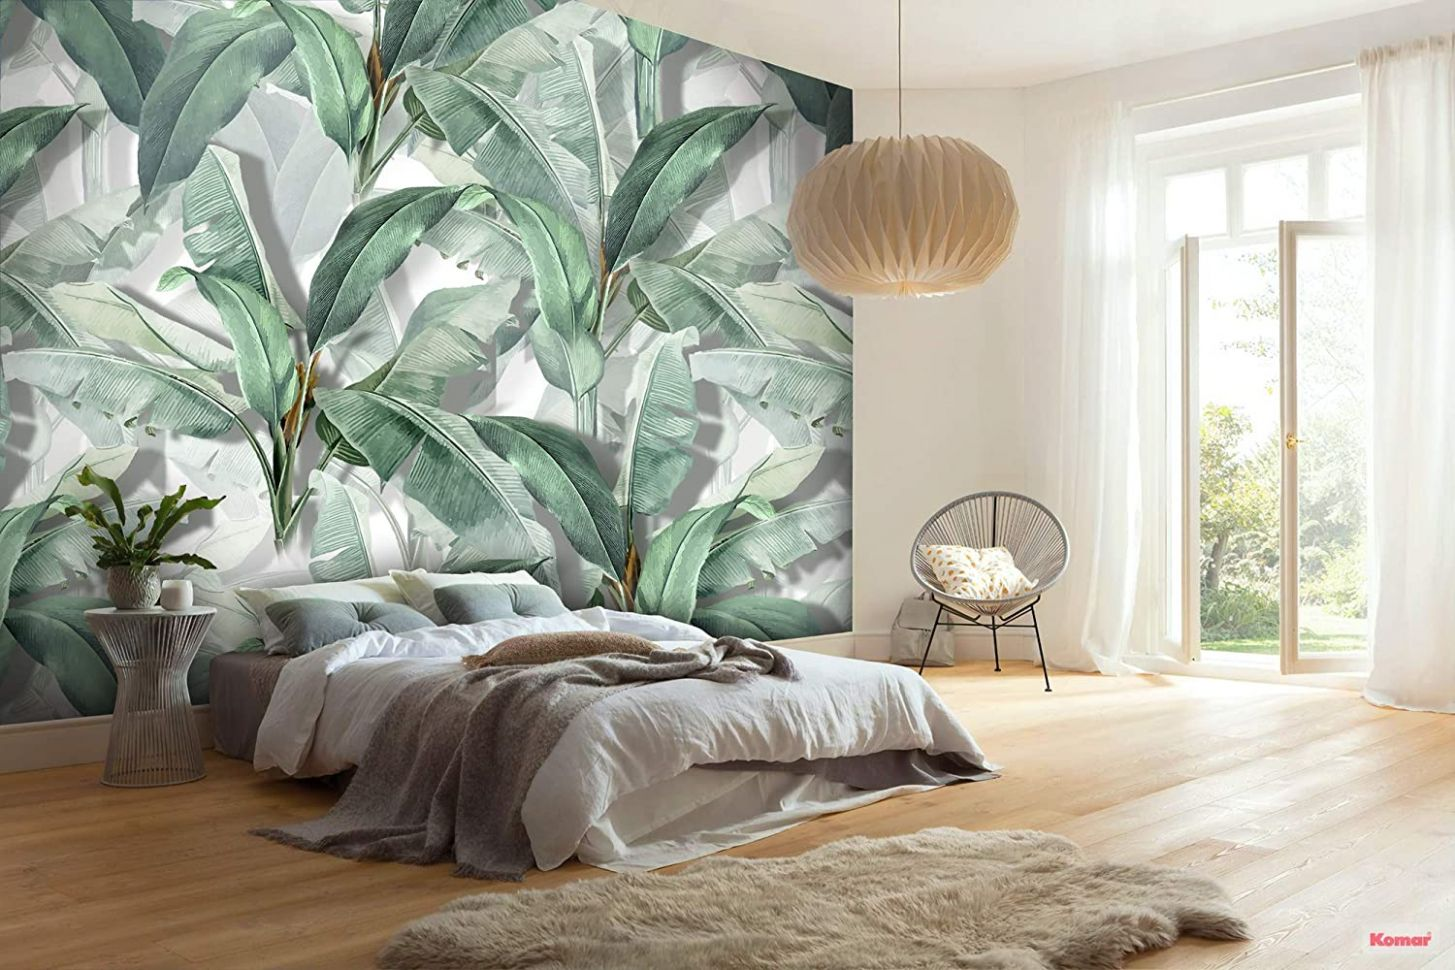 Murwall Banana Leaf Wallpaper Tropical Leaves Wall Mural Leaf Pattern Wall  Print Botanical Home Decor Living Room Bedroom Entryway - home decor wallpaper